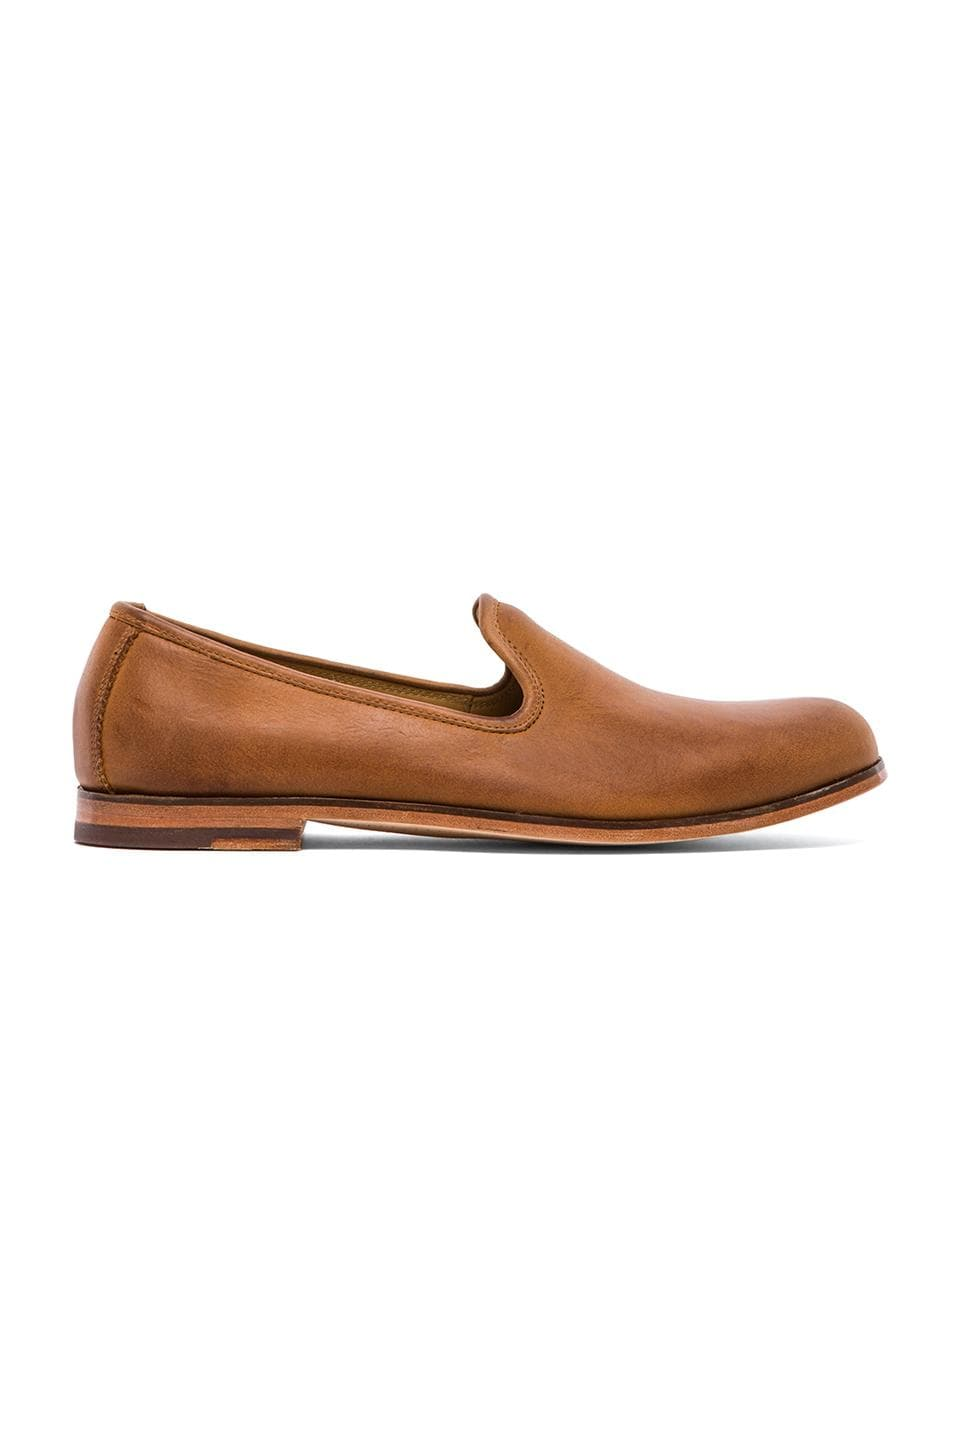 Cole Haan Edison Loafer in British Tan